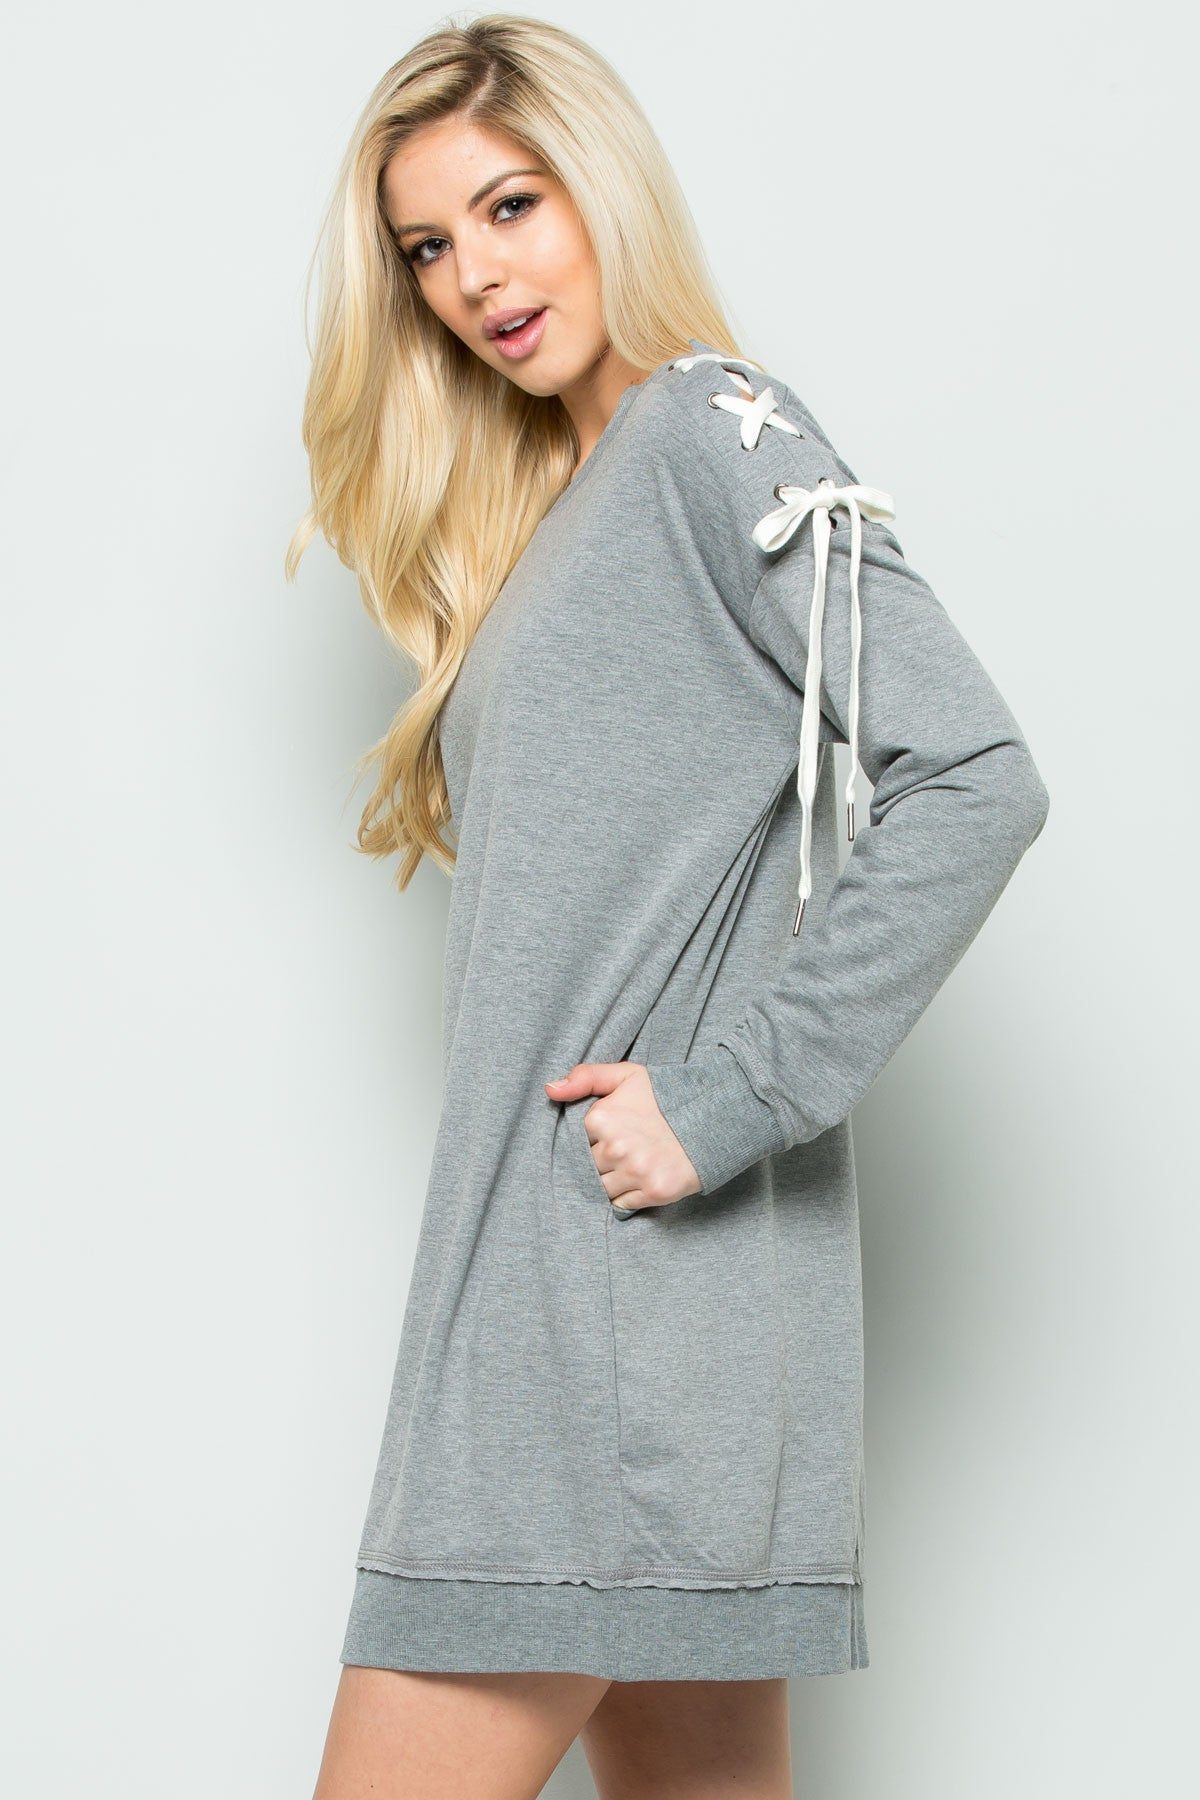 Shoulder Lace Up Sweater Dress in Heather Grey - Dresses - My Yuccie - 3